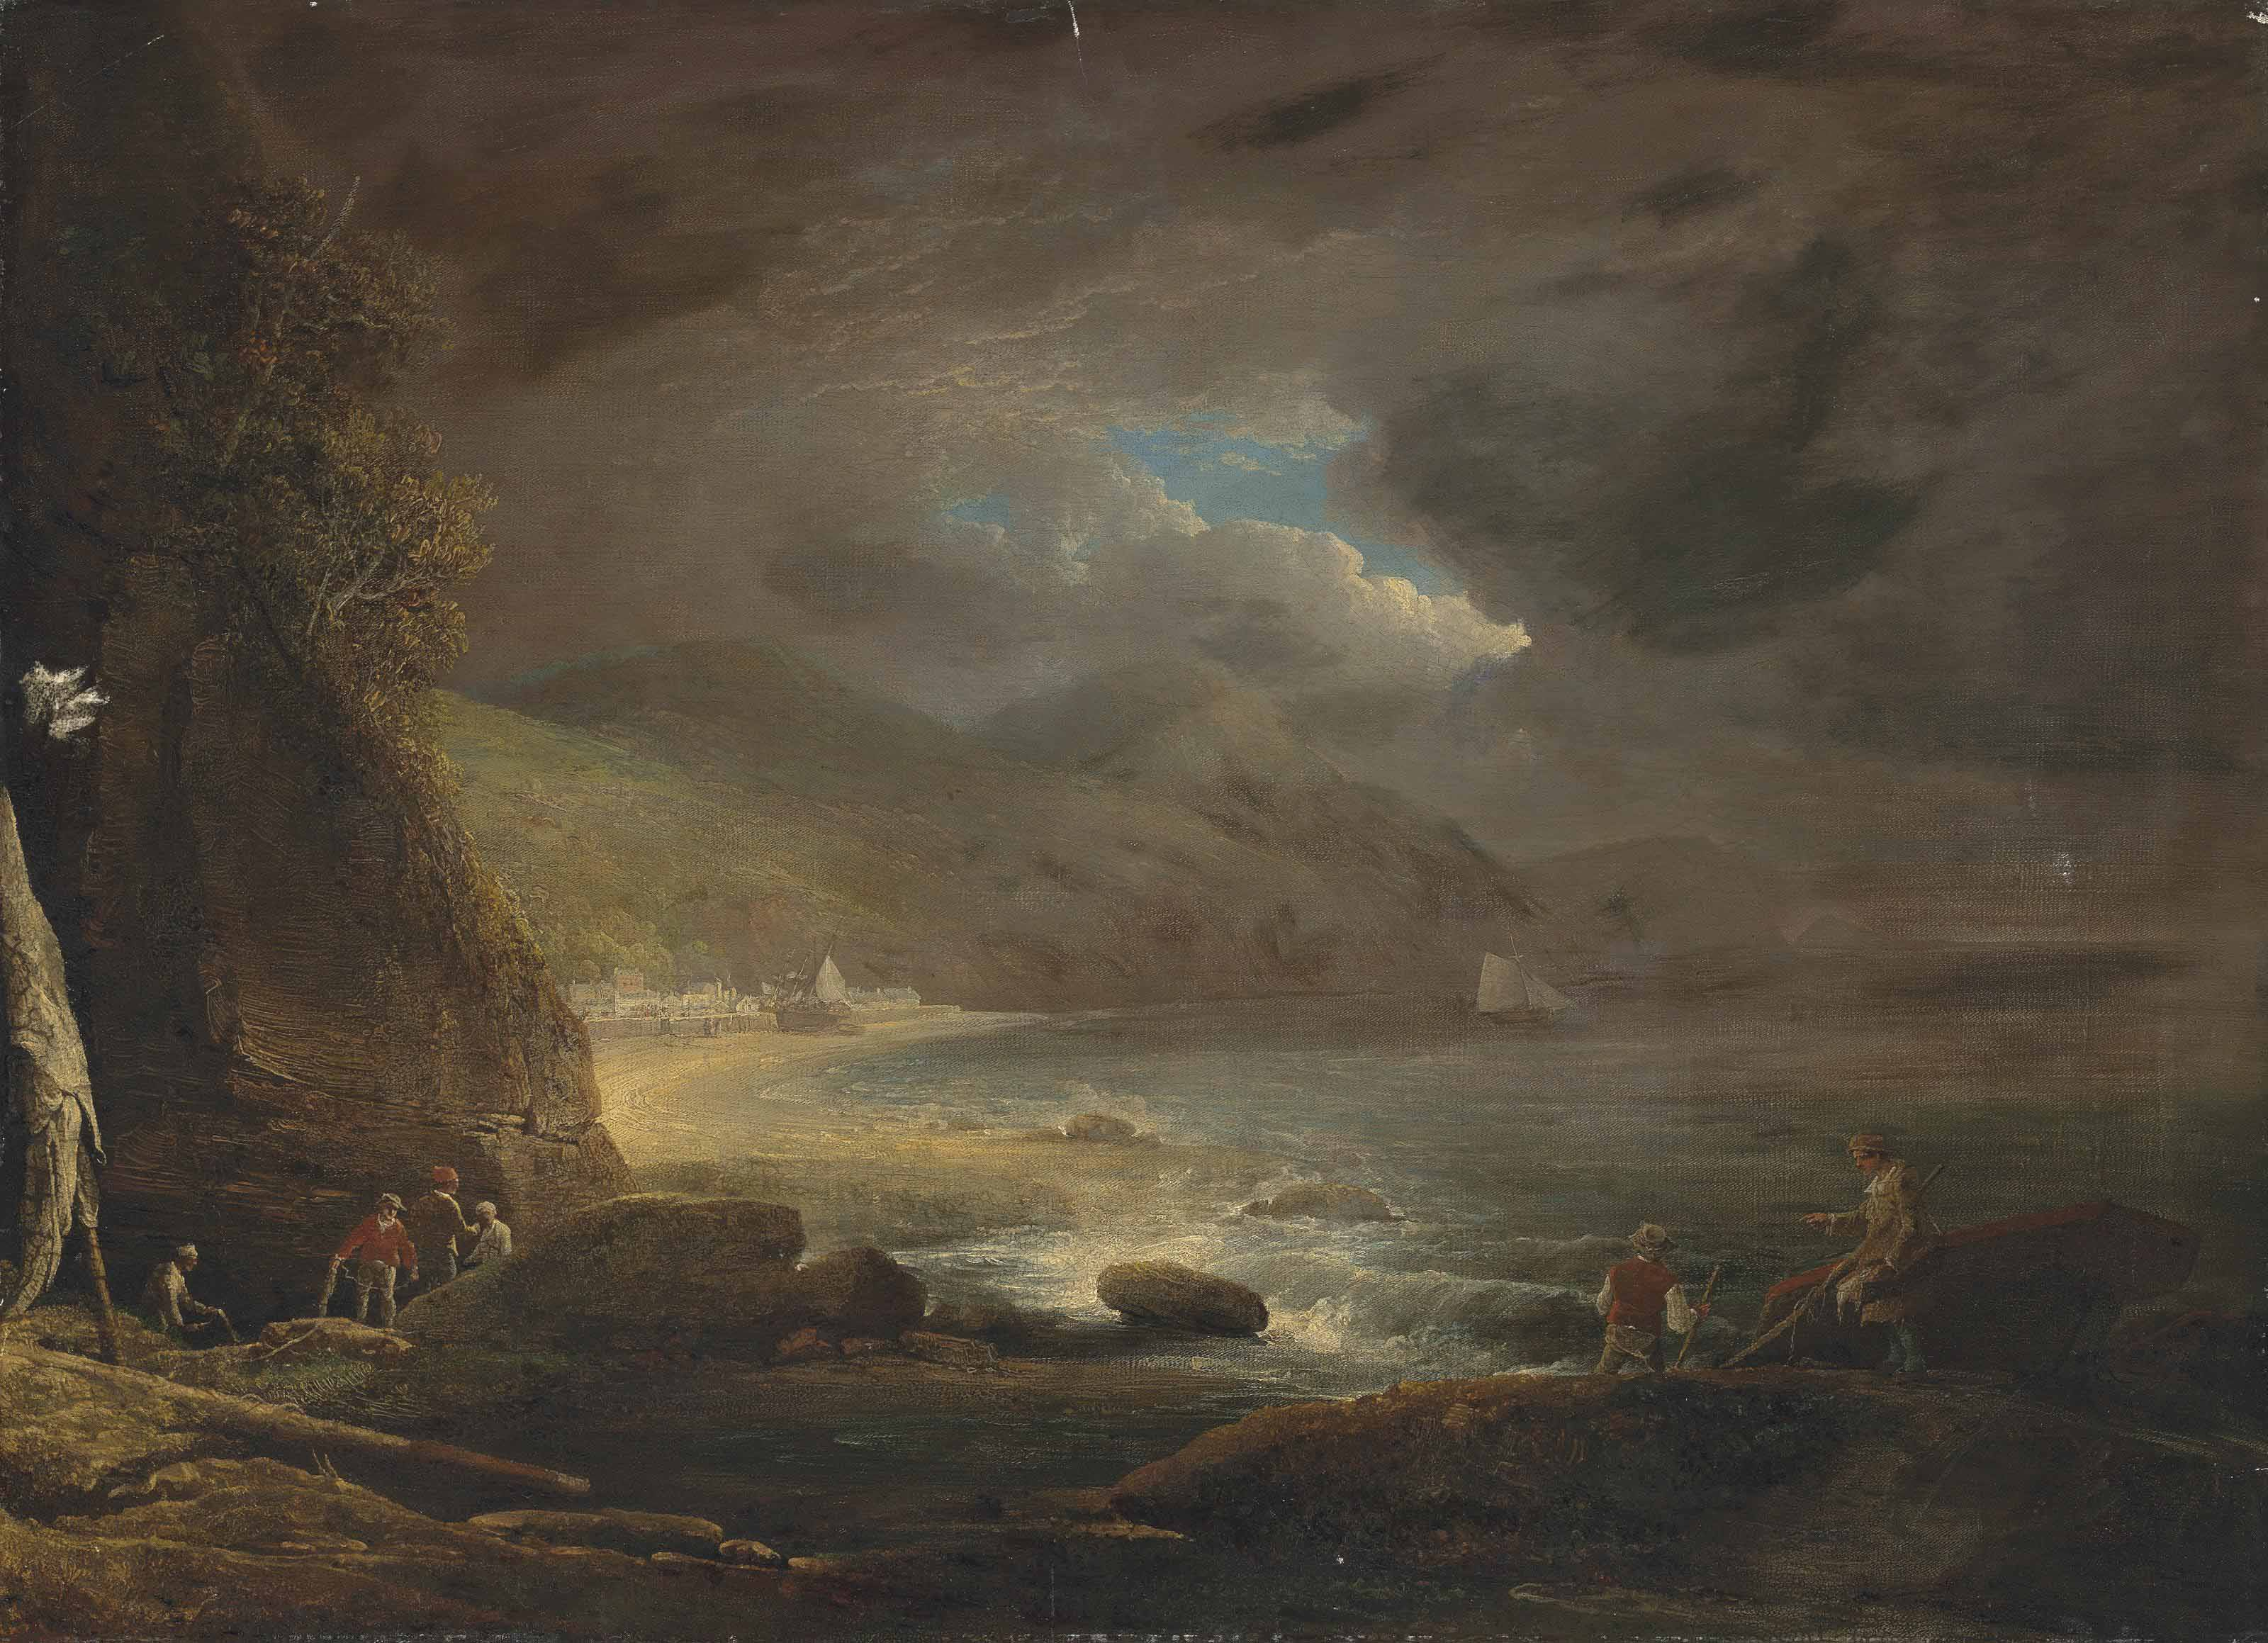 A coastal landscape with figures preparing their nets on the shore, a town beyond